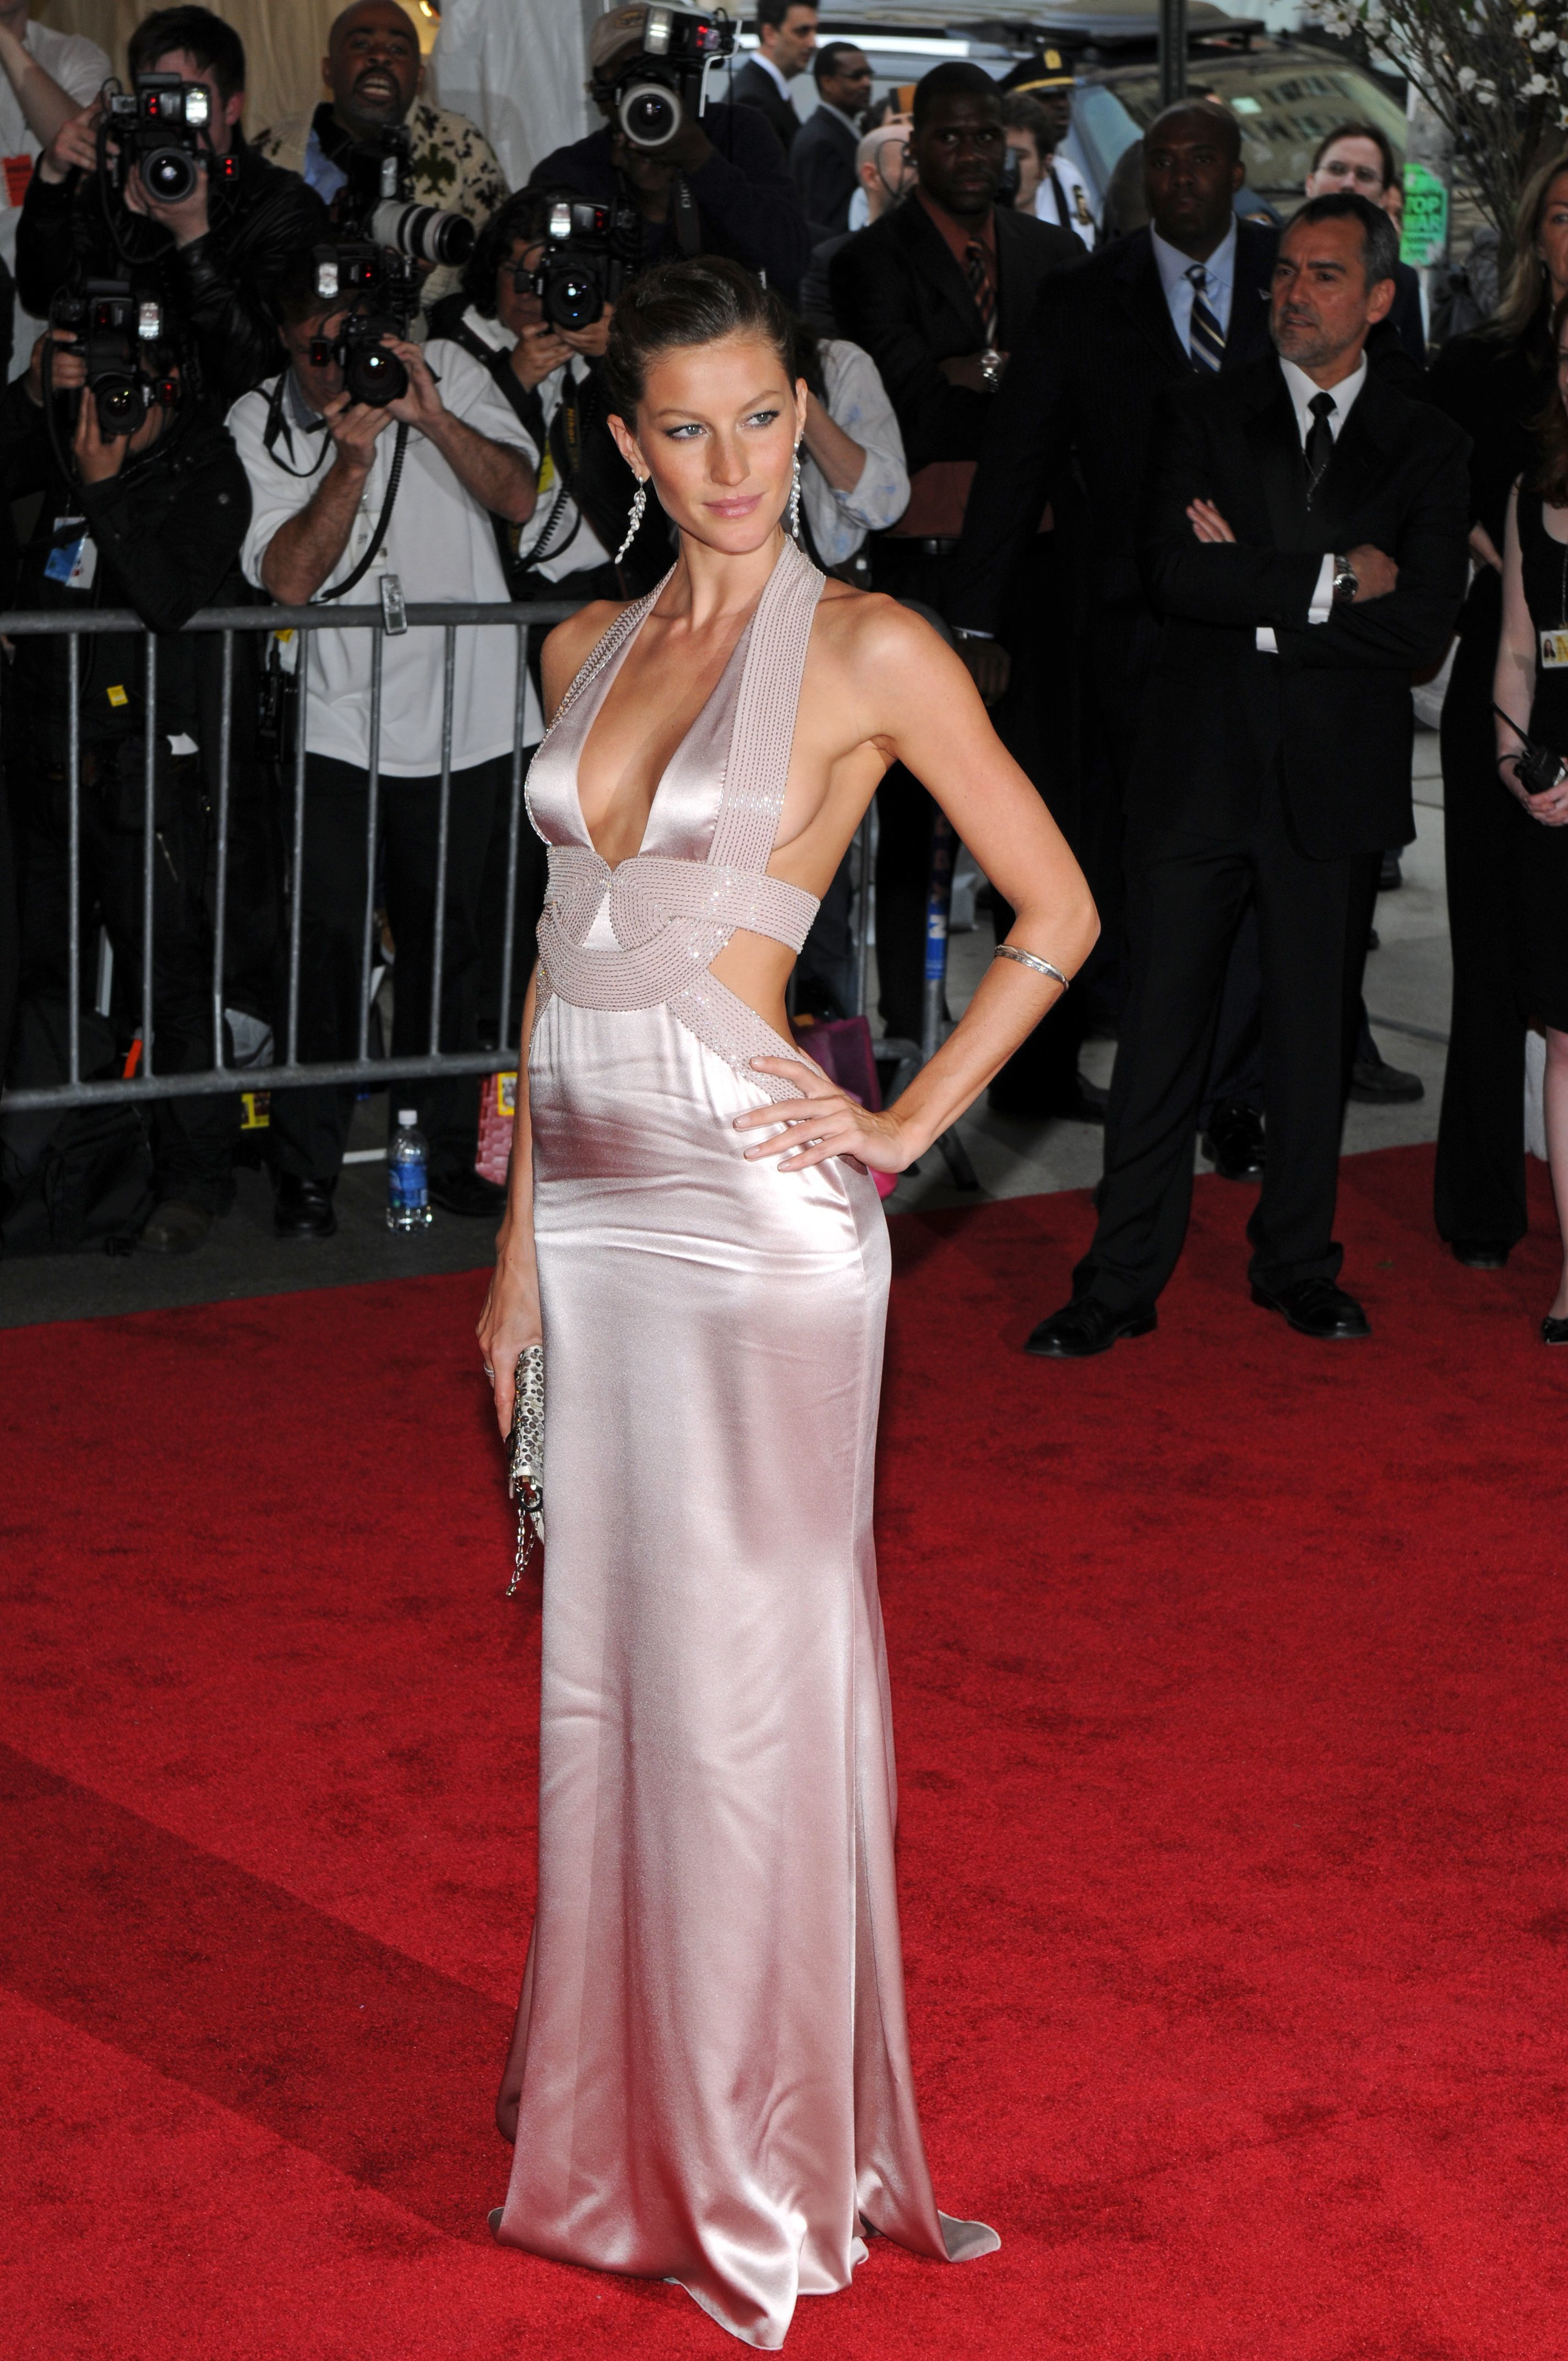 Gisele Bundchen attends the Costume Institute Gala: Superheroes: Fashion and Fantasy at The Metropolitan Museum of Art in New York on May 5, 2008.